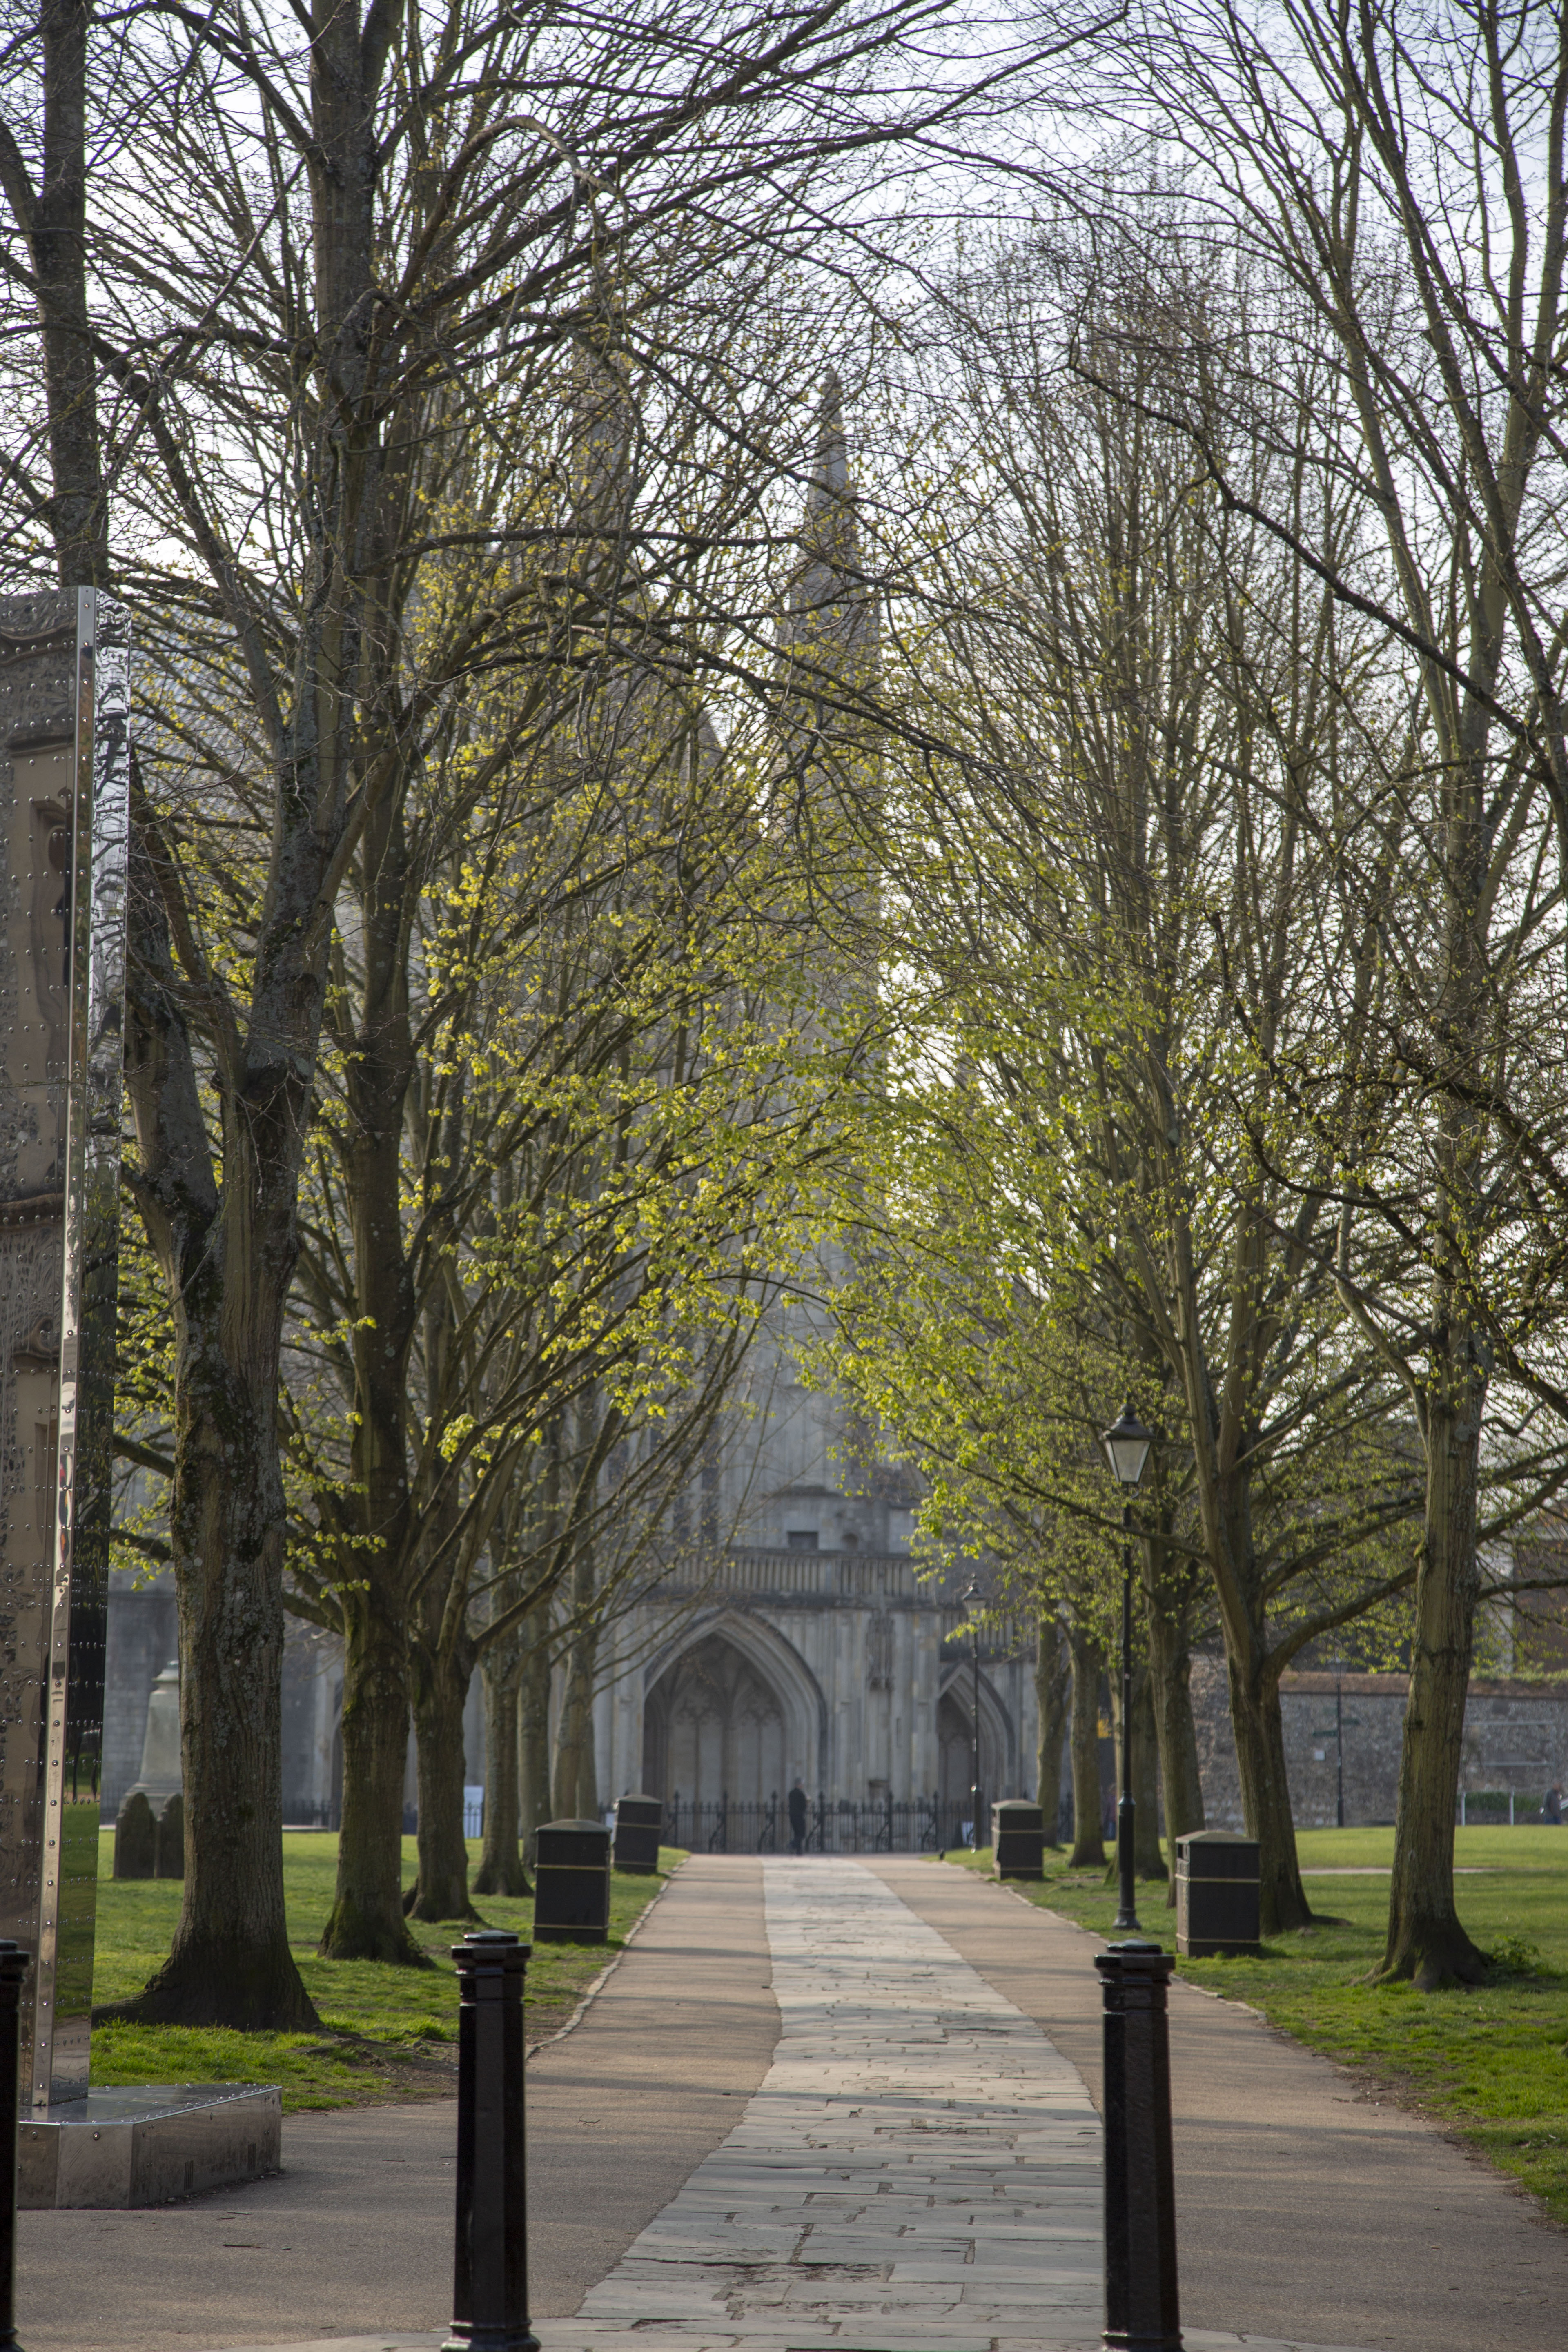 Focus on a cobbled path lined with blossoming trees, leading up to Winchester Cathedral